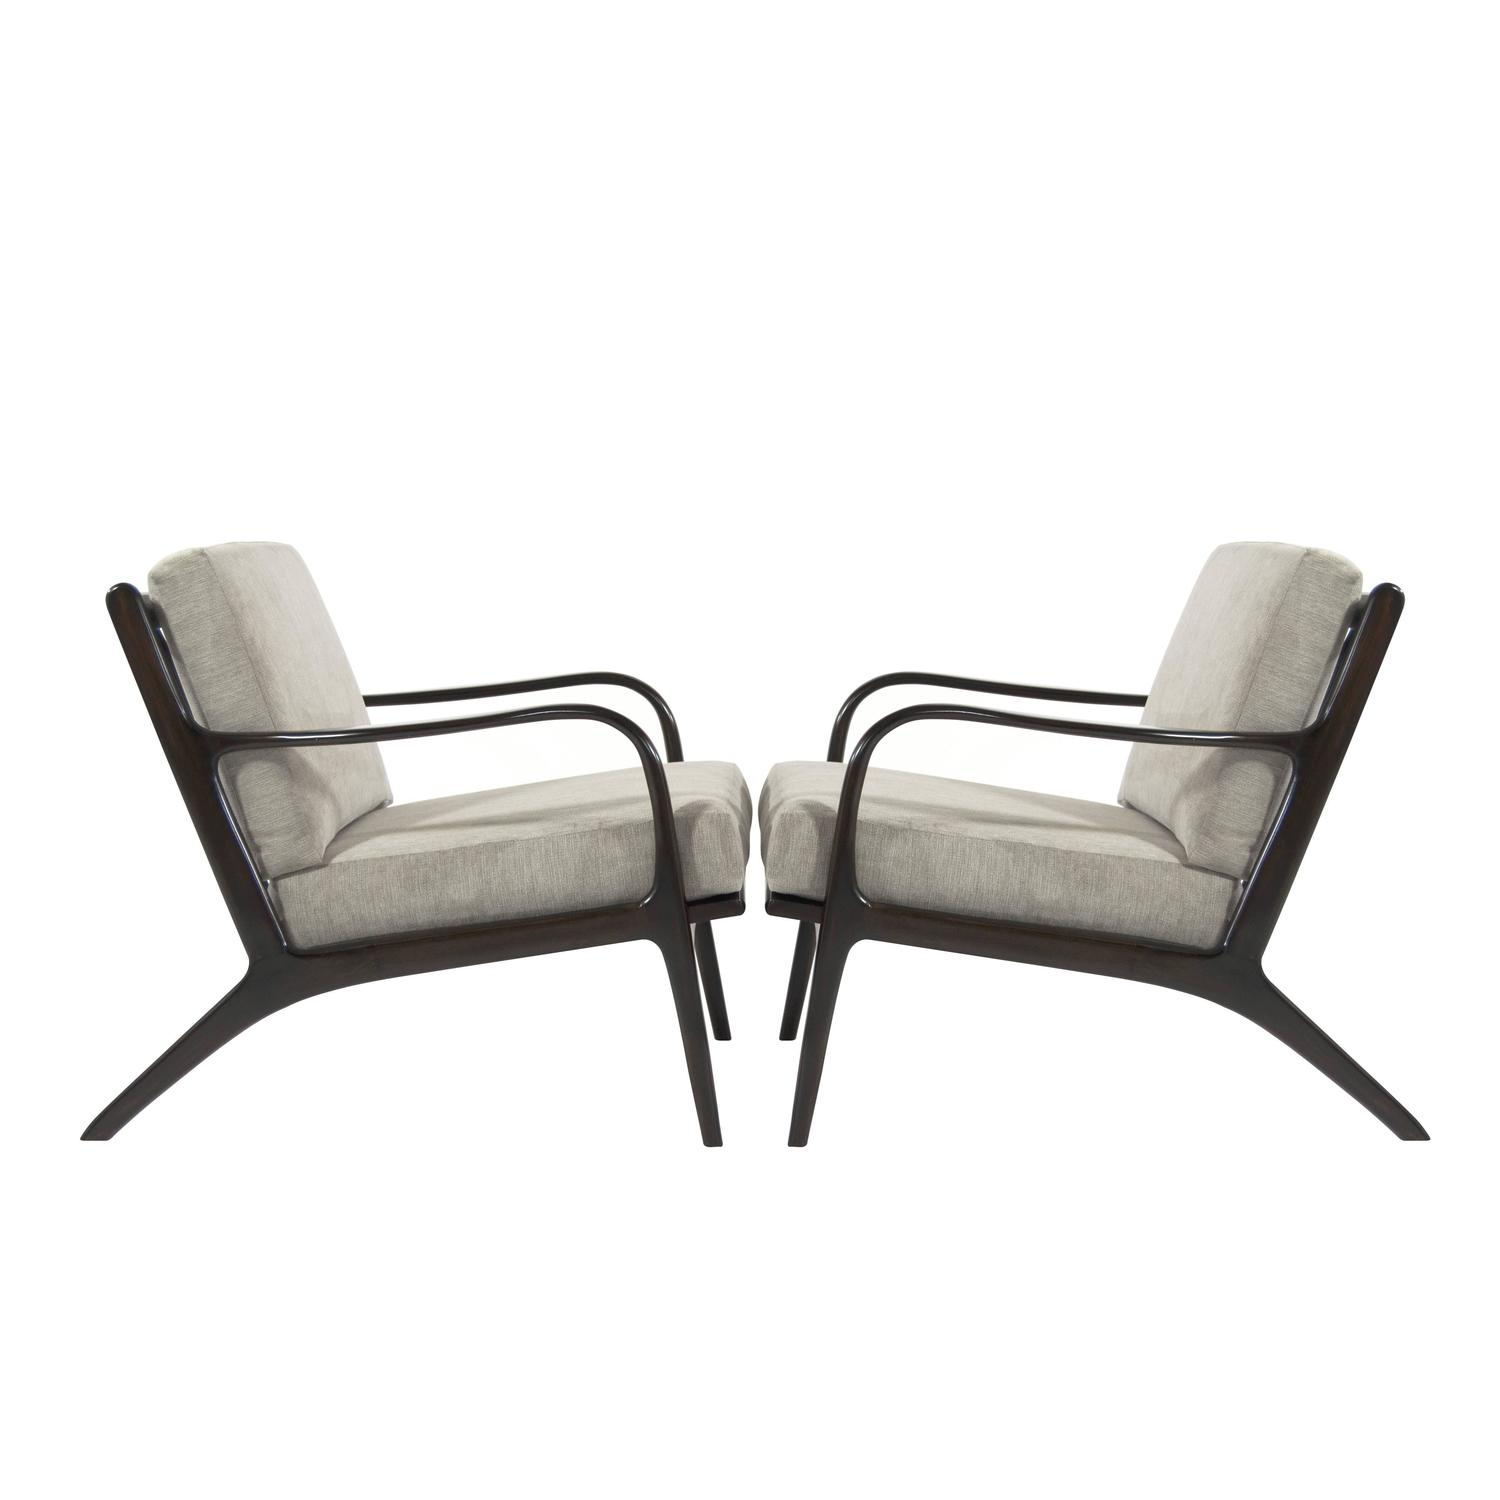 Adrian Pearsall Model 2315 C Lounge Chairs At 1stdibs